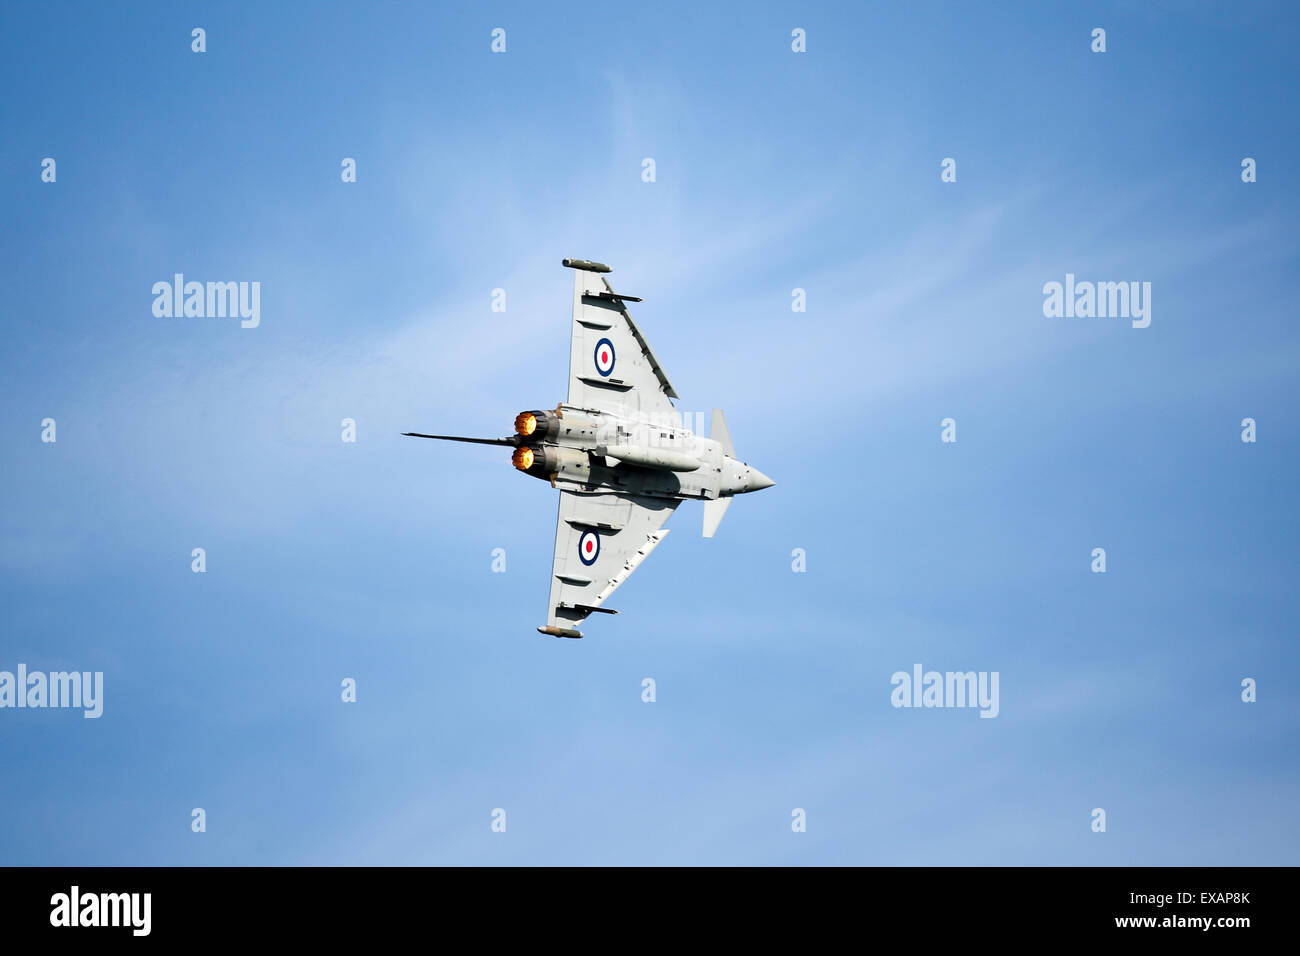 Goodwood, UK. 28th June, 2015. An RAF - Typhoon FGR4 aircraft in Battle of Britain colours at the Festival of Speed - Stock Image